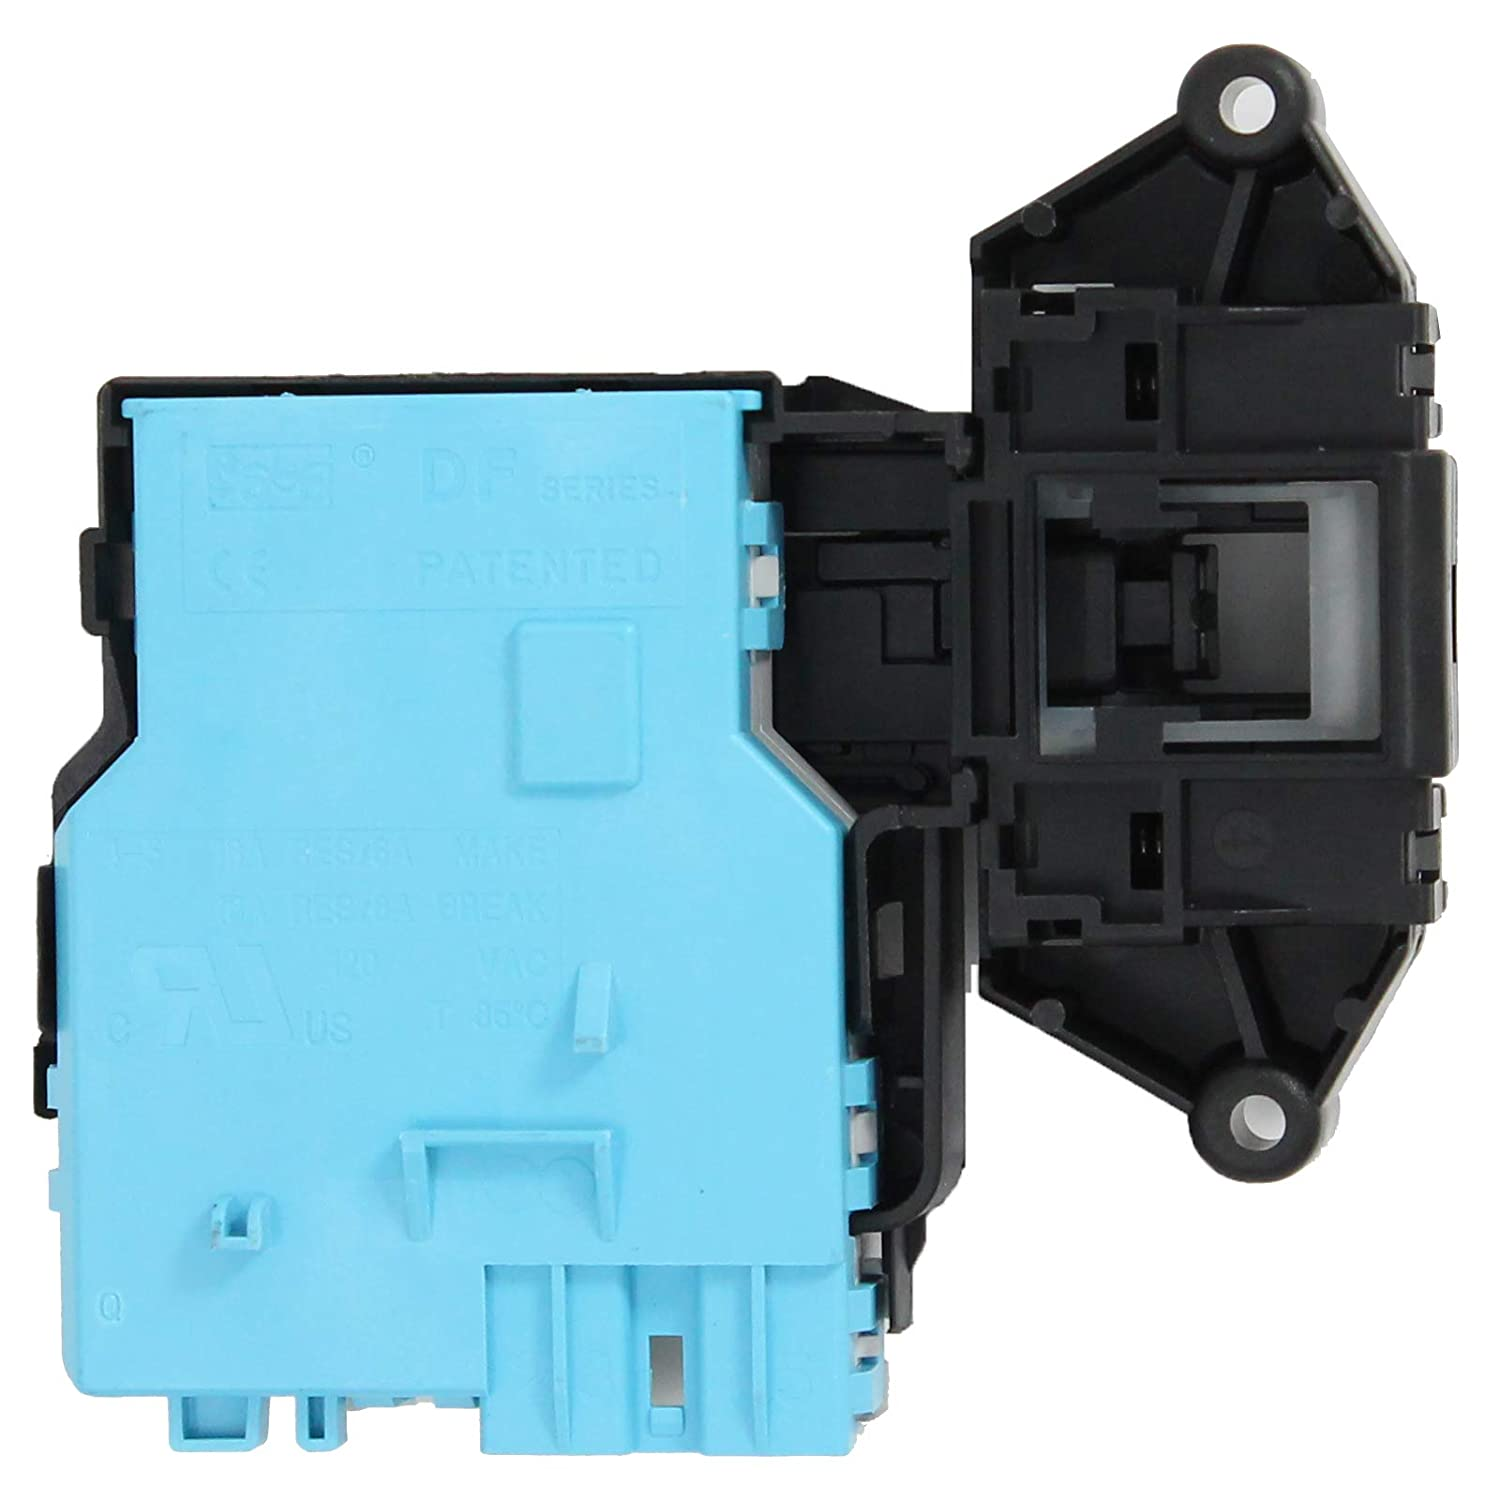 Compatible with 6601ER1004C Washing Machine Door Switch and Lock Assembly EBF49827801 Washer Door Lock Replacement for LG WM2455HW